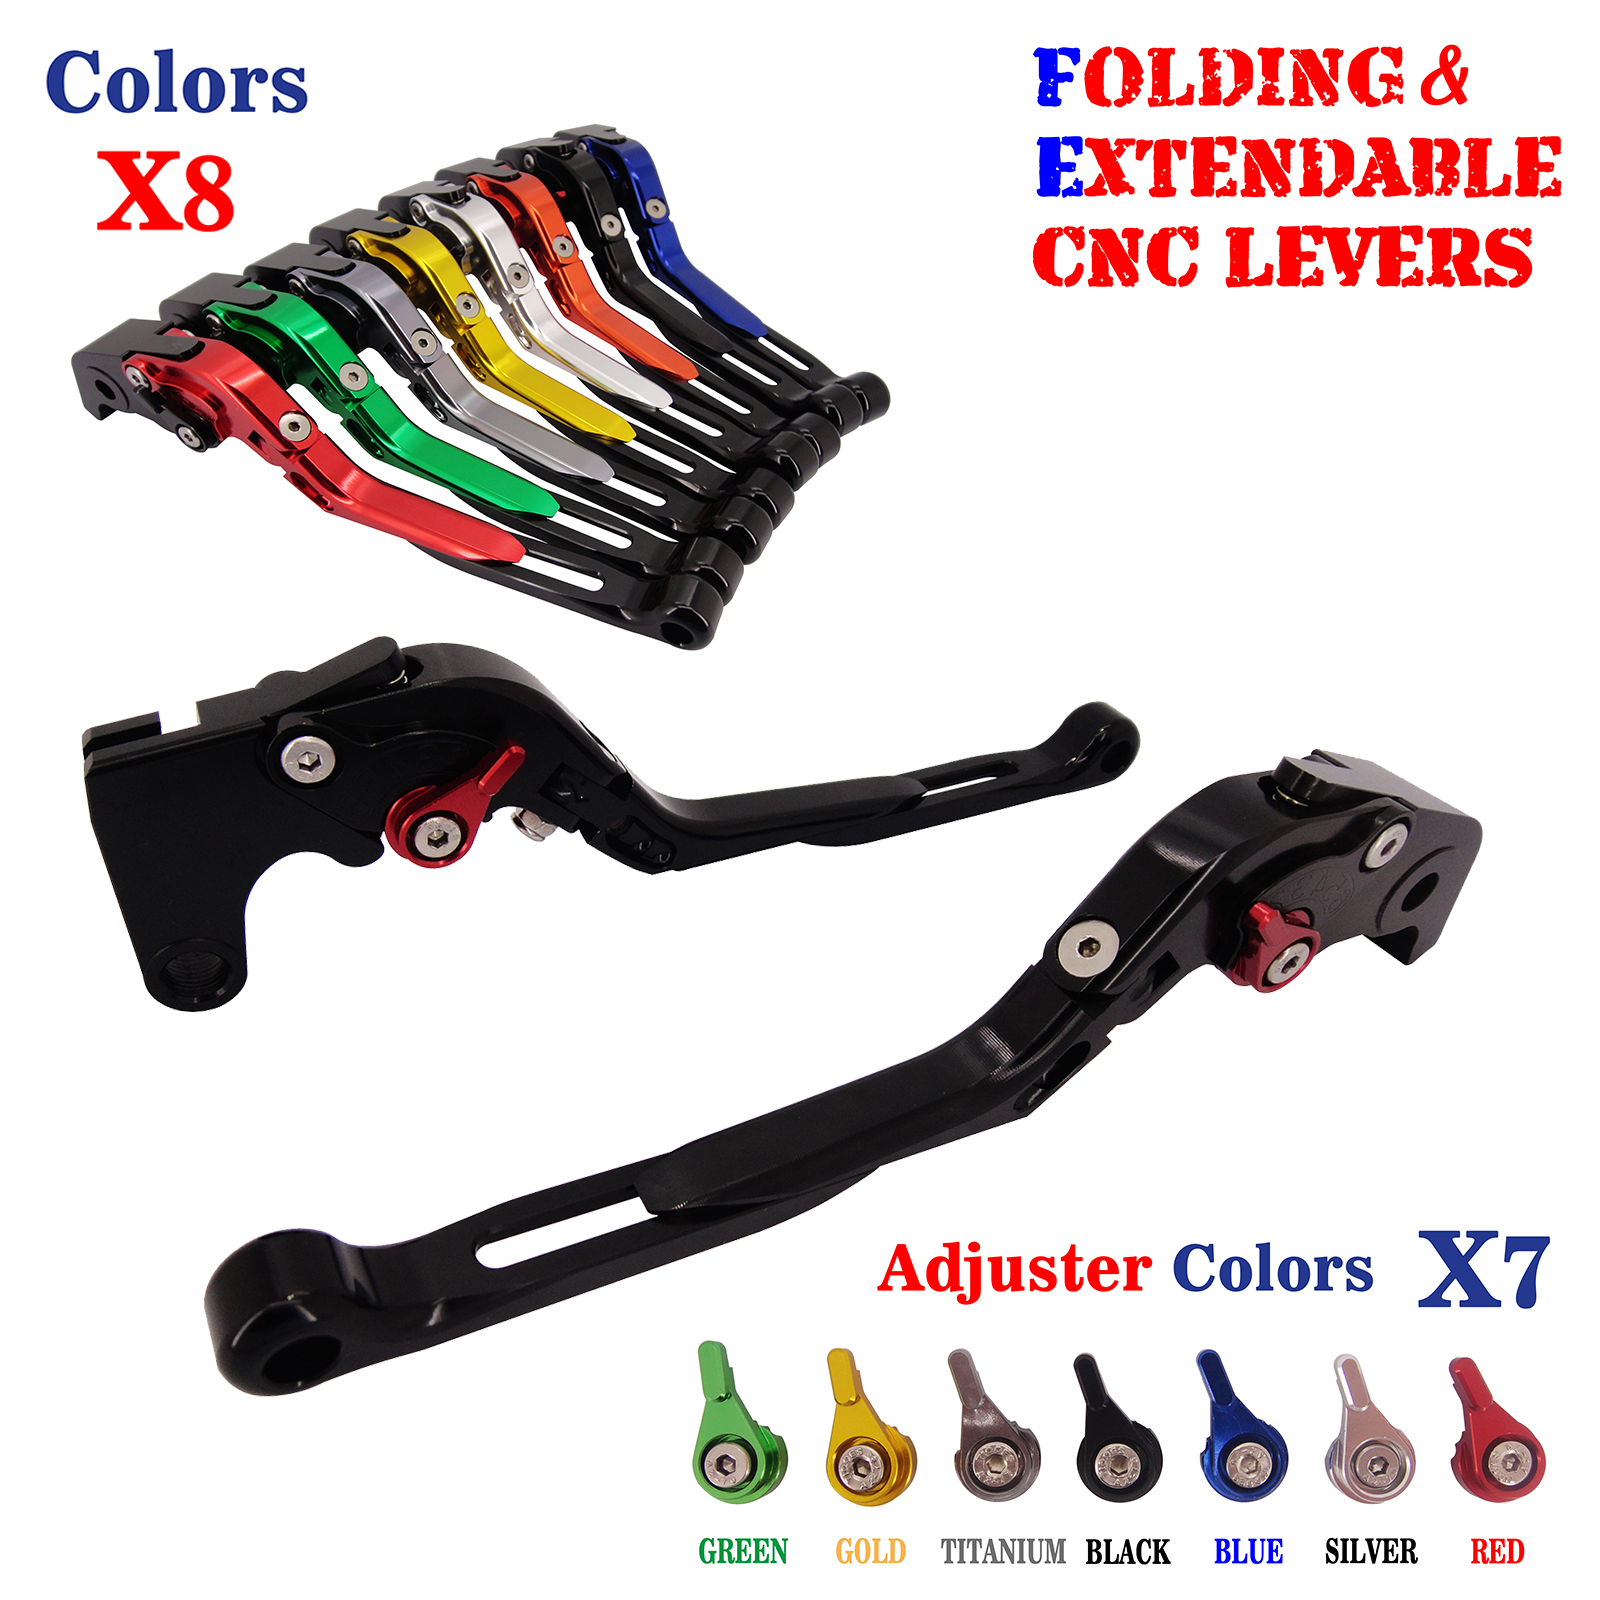 Easy To Install Folding Extendable Brake Clutch Levers For Buell XB12Scg 2009 M2 Cyclone 1997-2002 billet extendable folding brake clutch levers for buell m2 cyclone 1200 s1 x1 lightning xb 12 12r 12scg 12ss 97 98 99 00 01 02